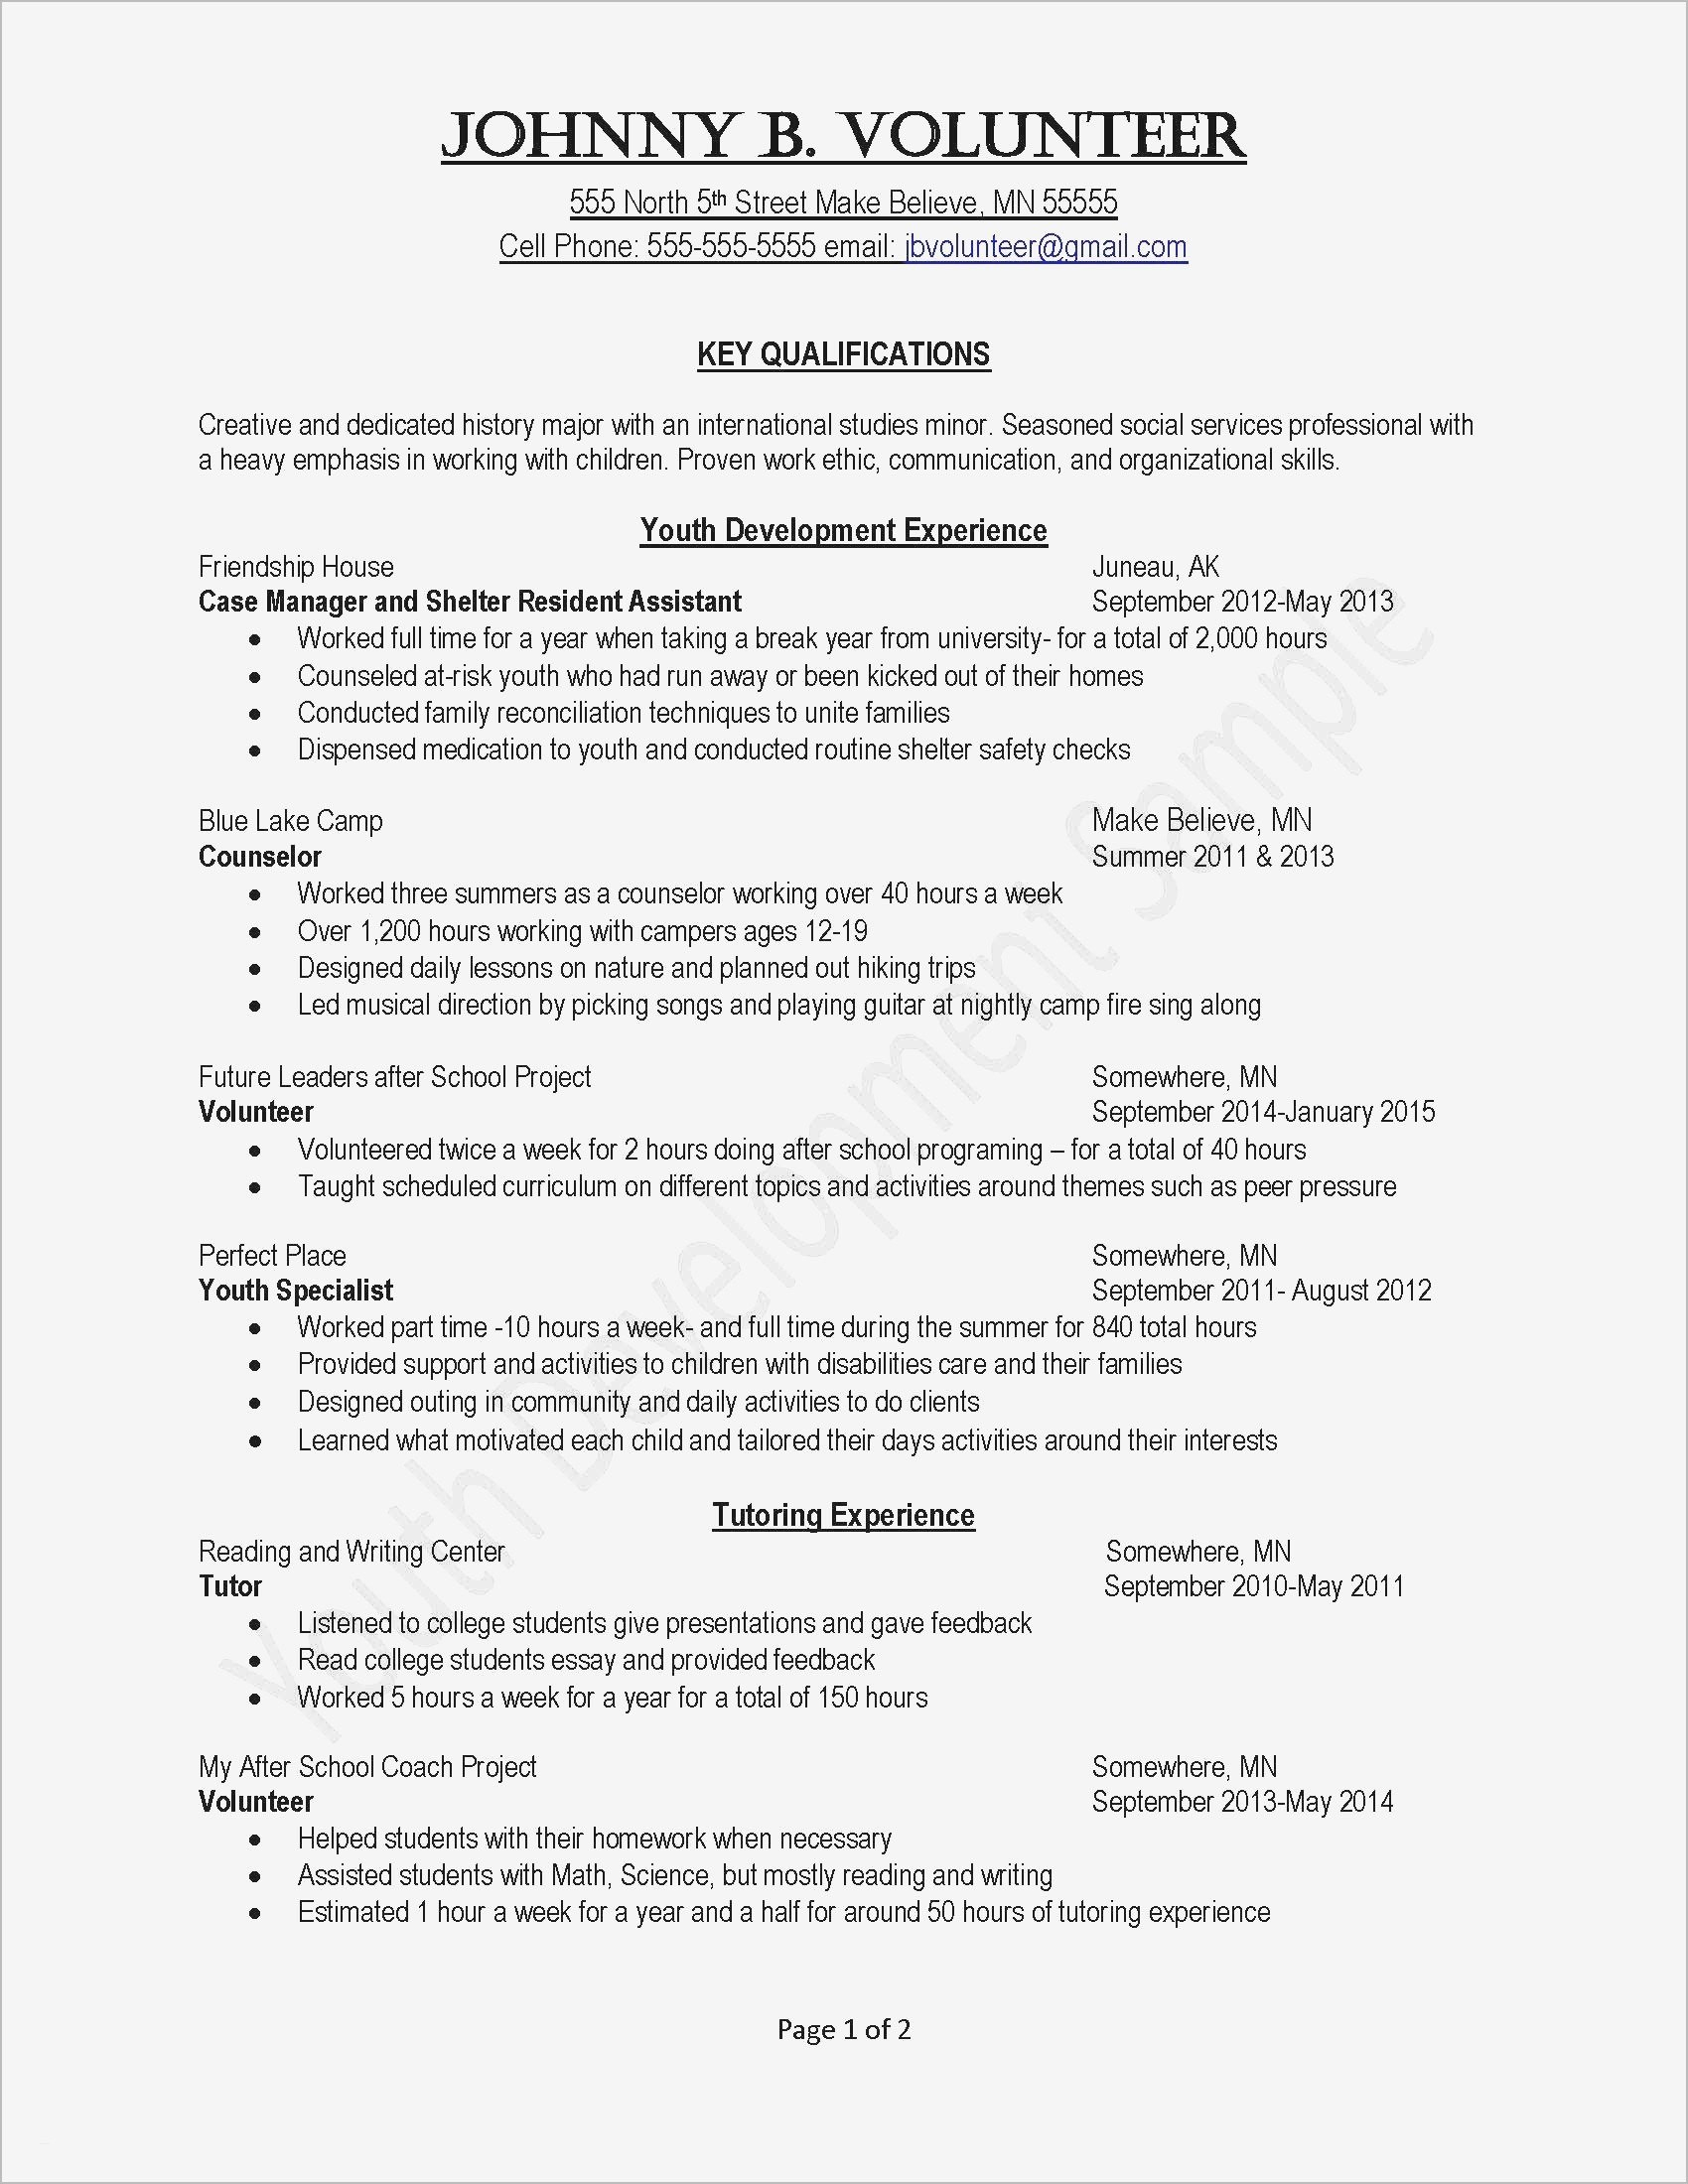 Personal Cover Letter Template